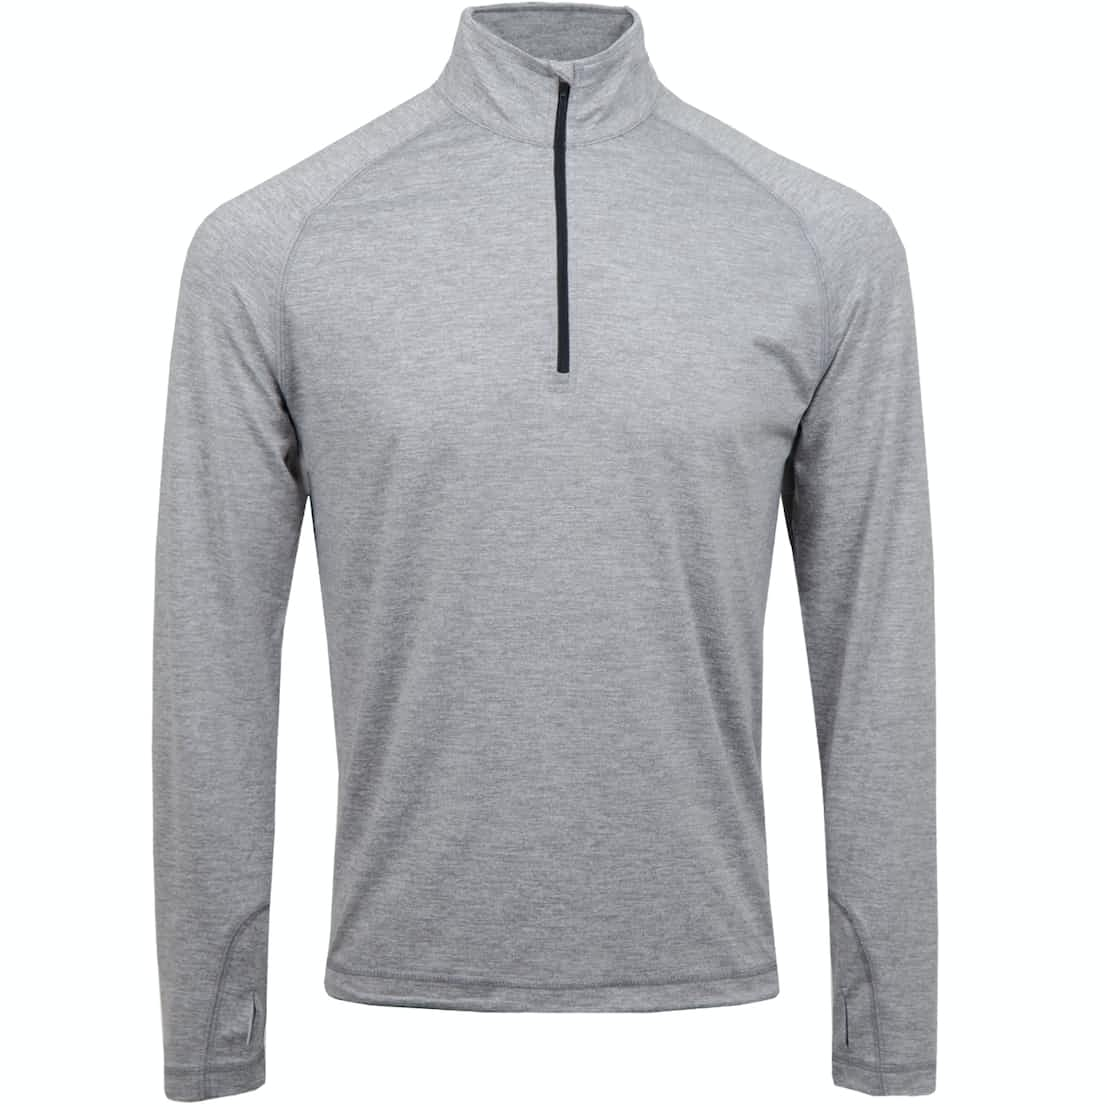 Performance Quarter Zip Heathered Mid Grey Heather - 2020